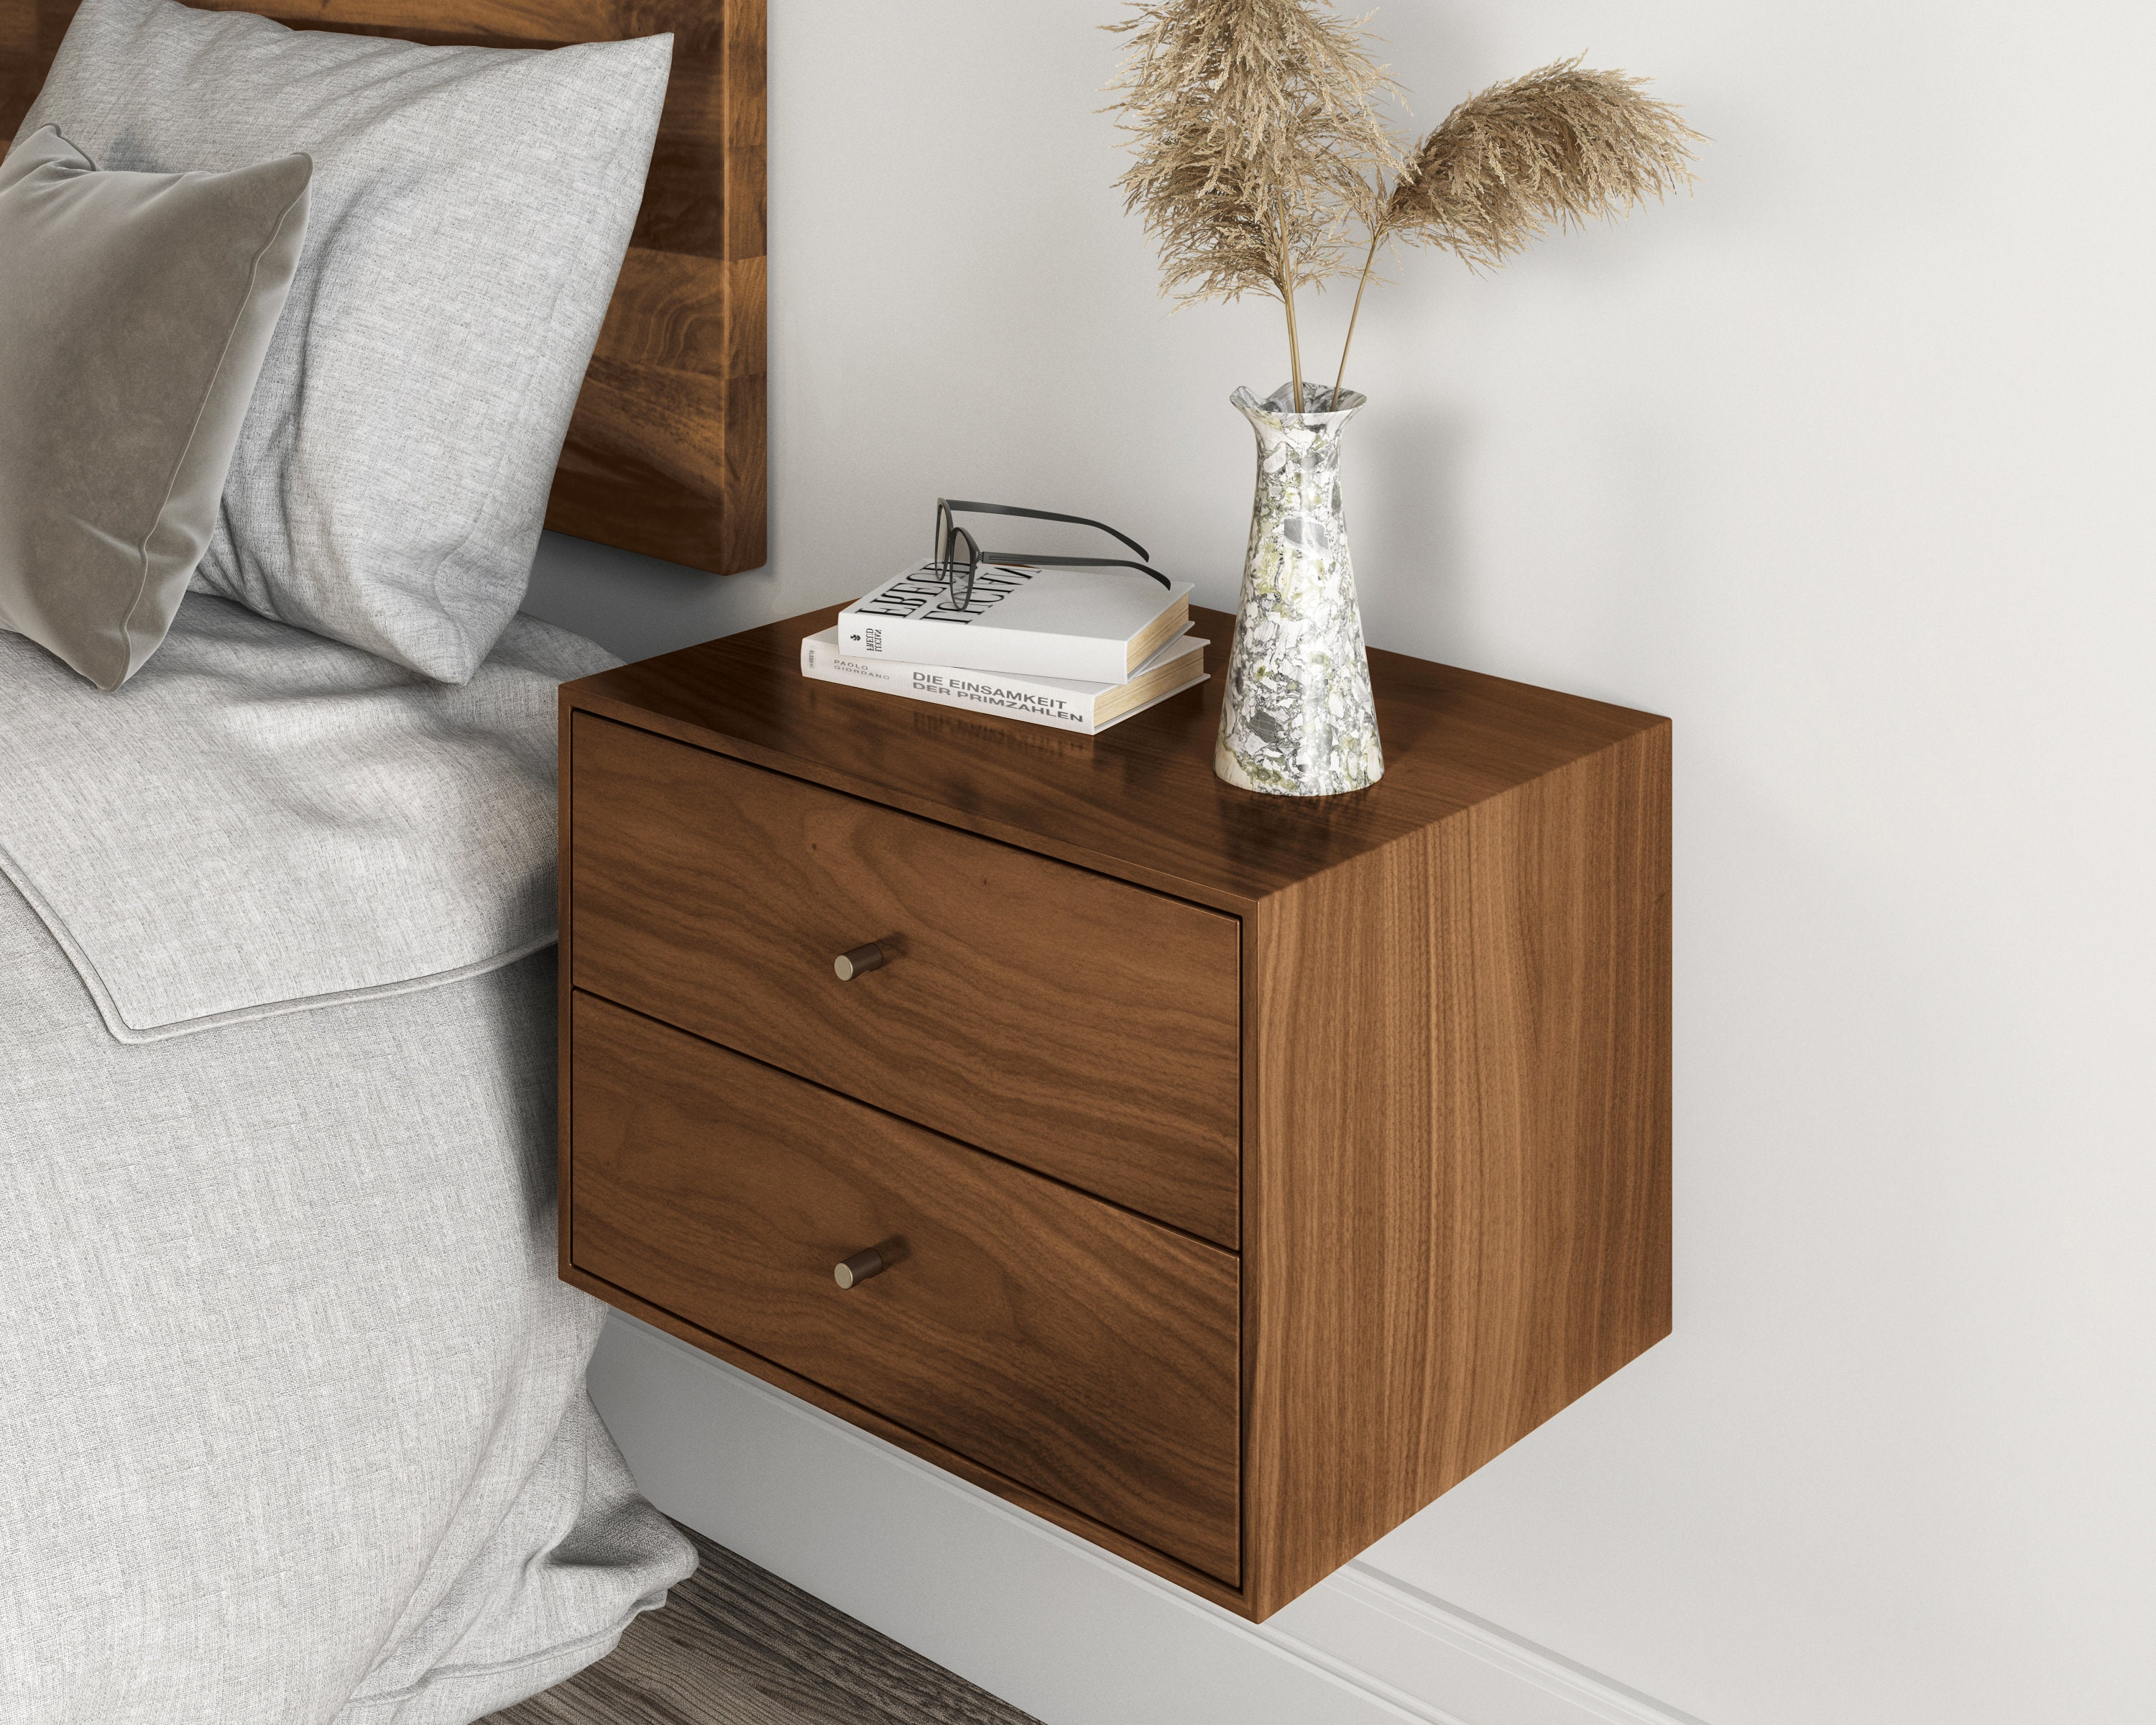 Picture of: Floating Nightstand With 2 Drawers In Solid Black Walnut Mid Century Modern Bedside Table Minimalist